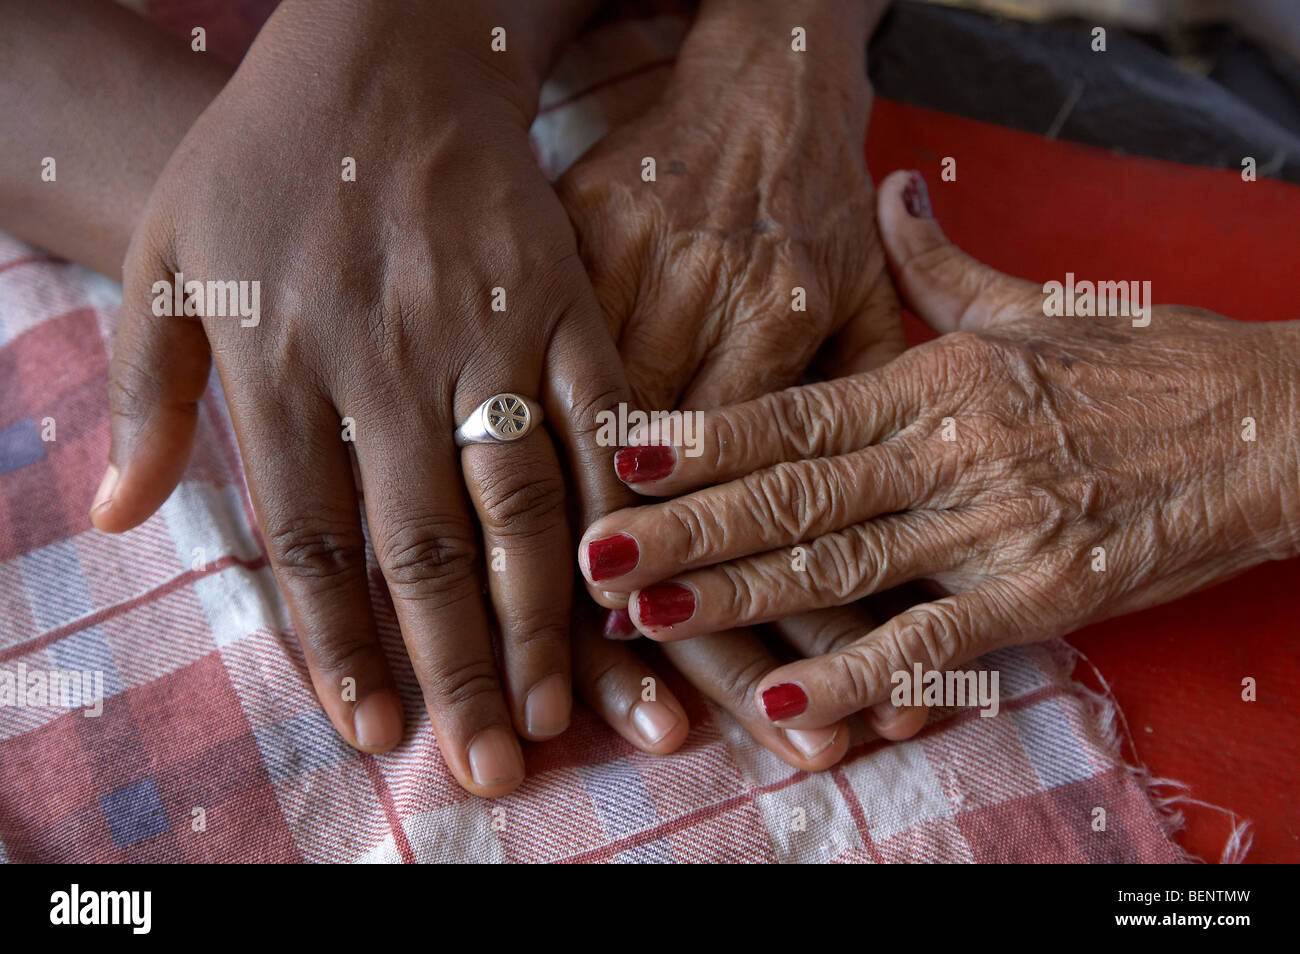 BRAZIL Hands of  people in the favela of Ferina in Joao Pessoa, Paraiba State. Stock Photo